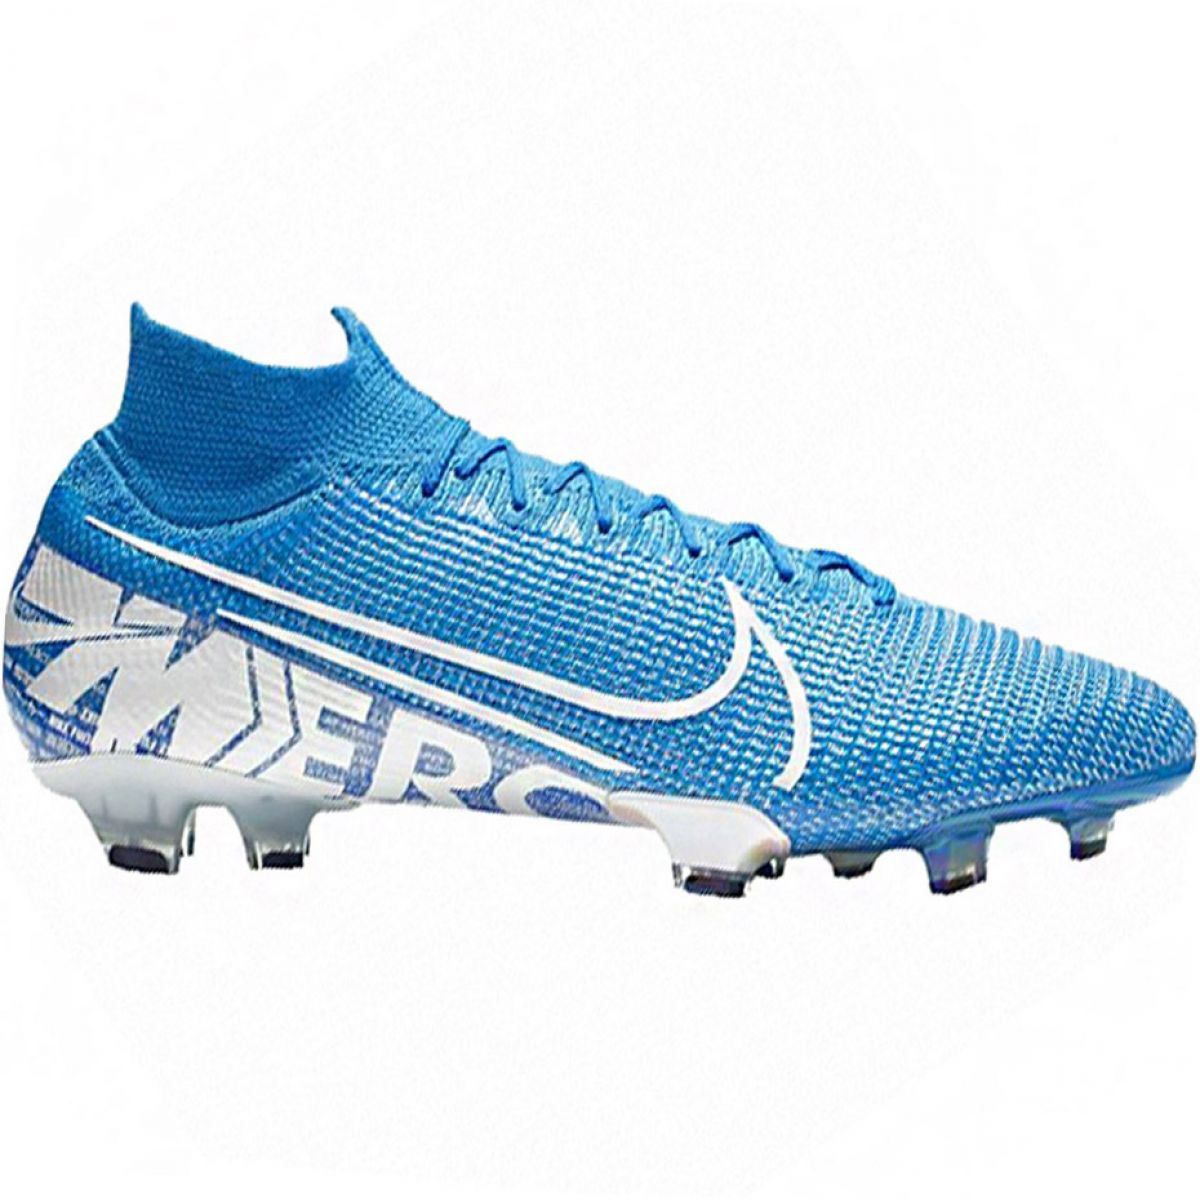 Details about Nike Mercurial Superfly 7 Elite Fg M AQ4174 414 football shoes blue blue